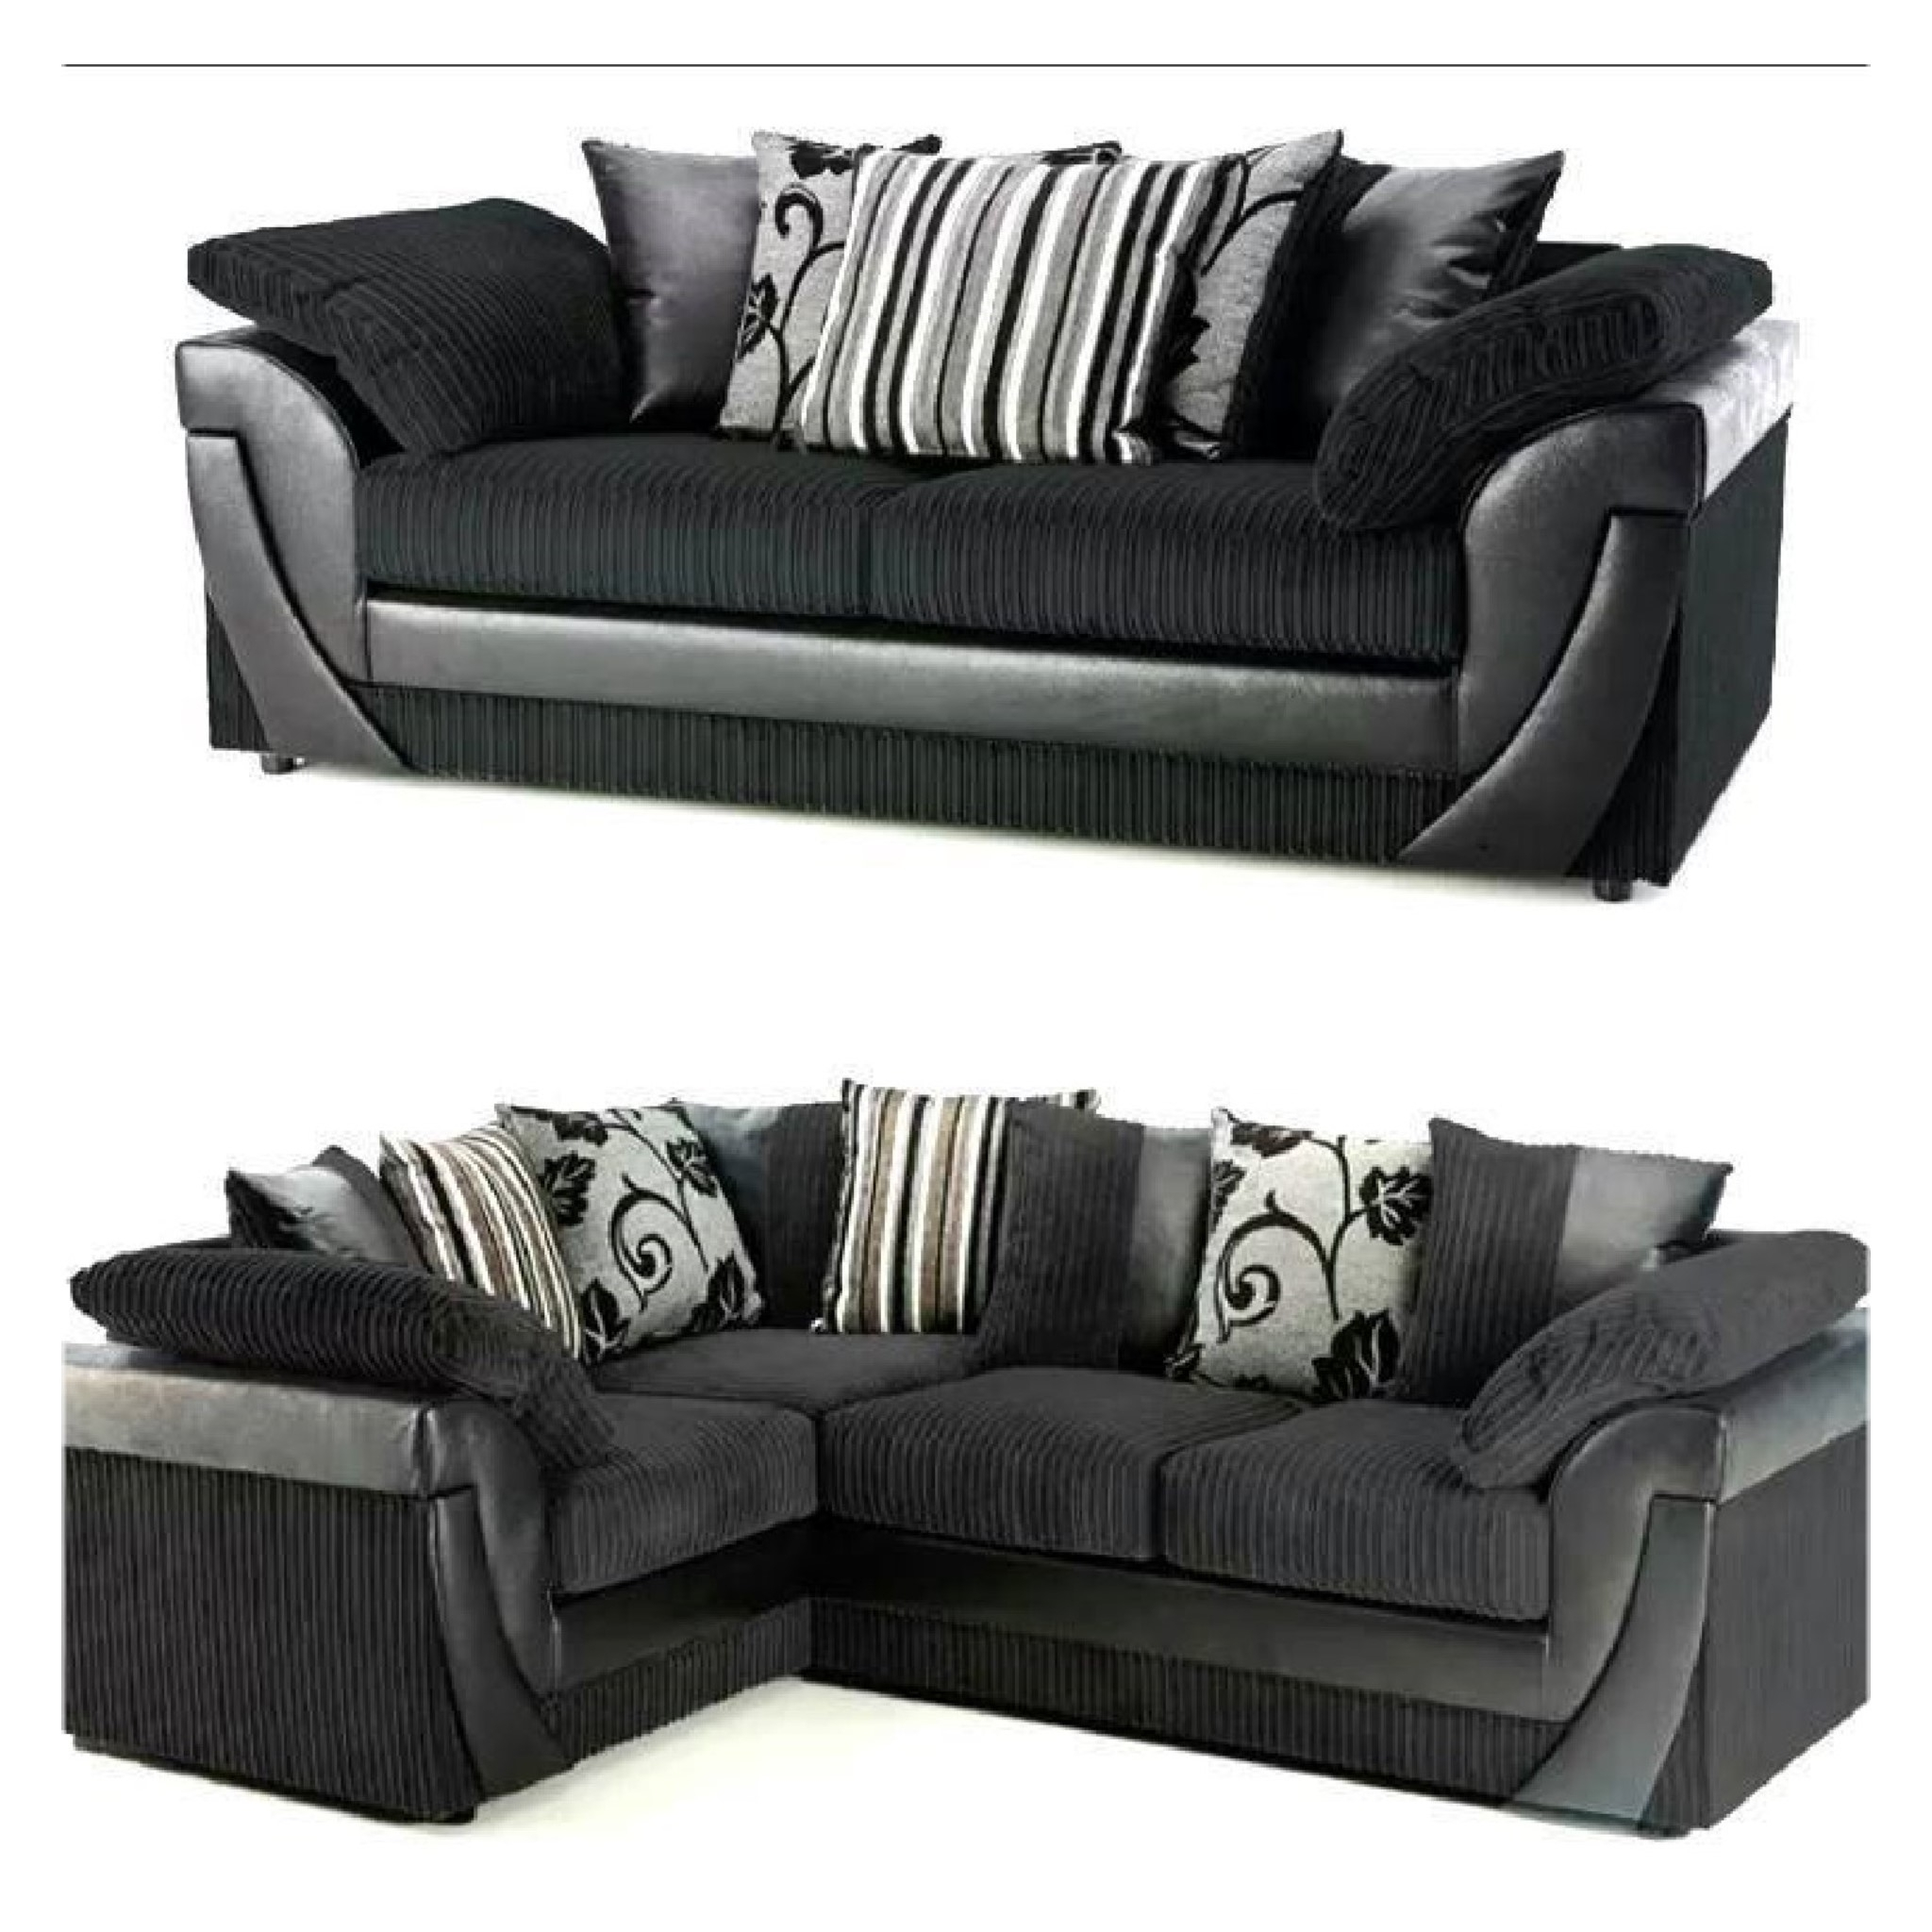 Fabric Corner Sofas With Trendy Lush Fabric Corner Sofa Set – Sofa Factory Uk (View 10 of 20)